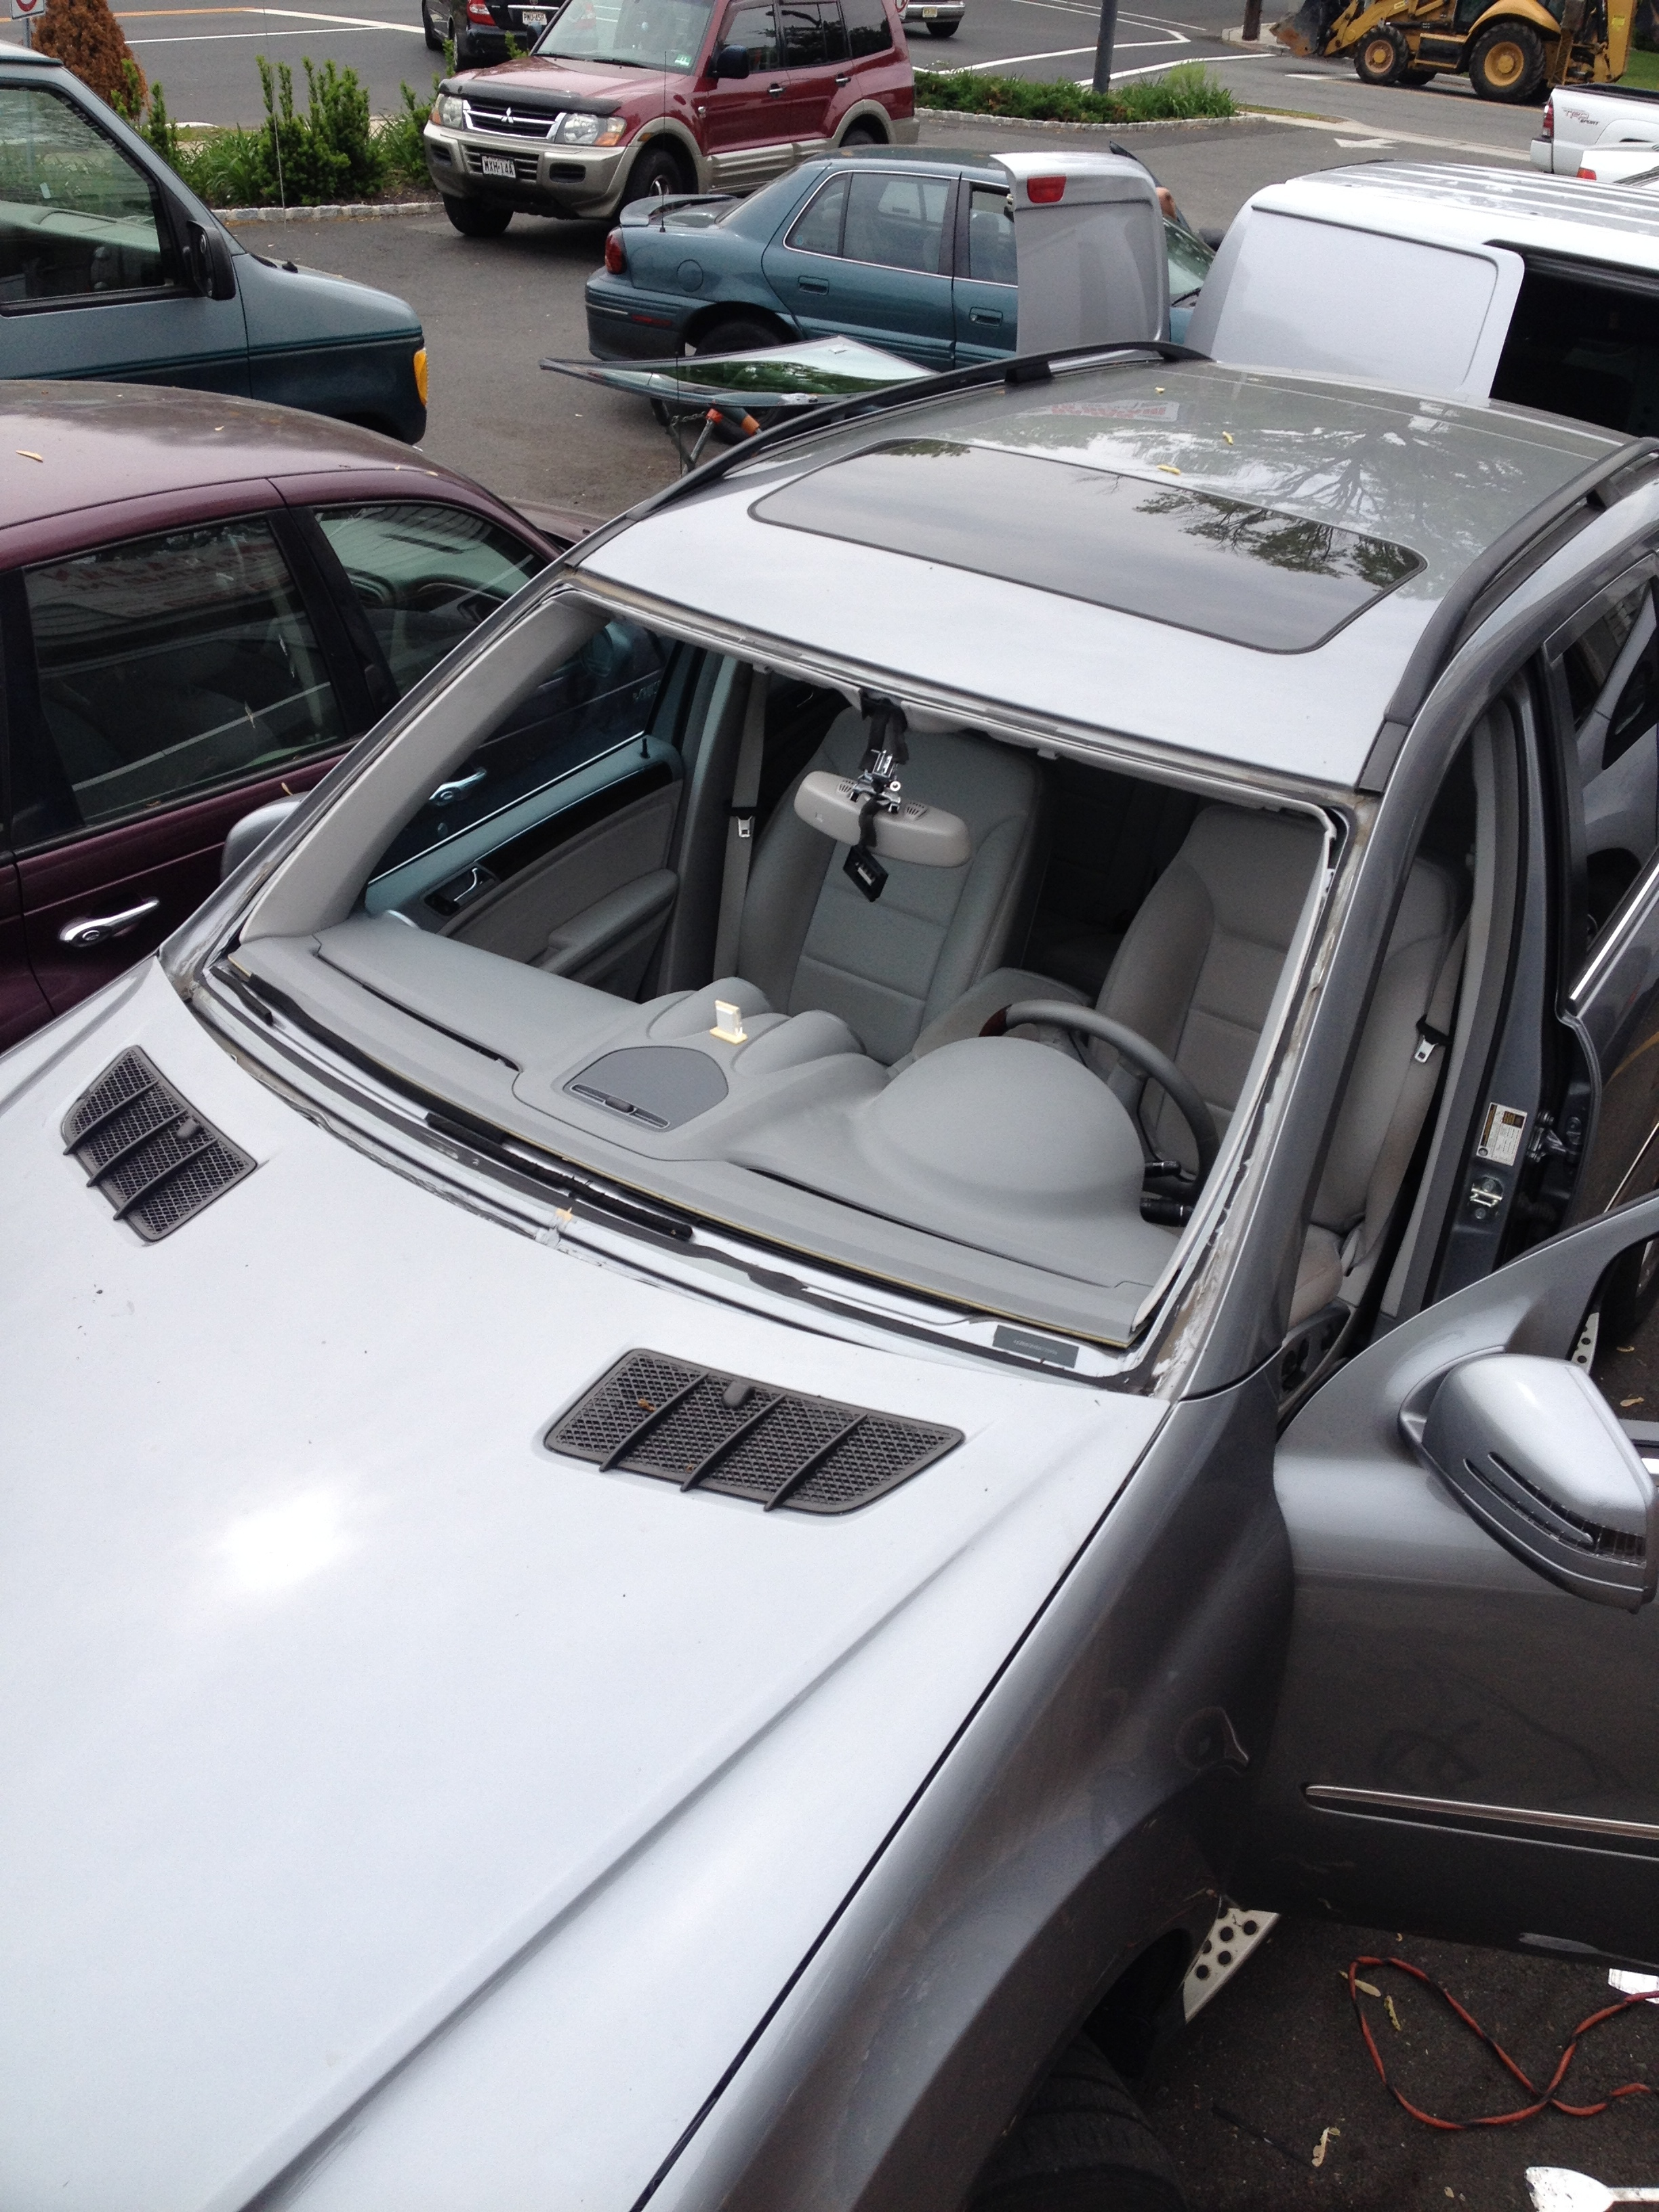 2012 Mercedes Benz GL450 windshield replacement Platinum Auto Glass in New Jersey @732-993-6844@platinumautoglassnj.com